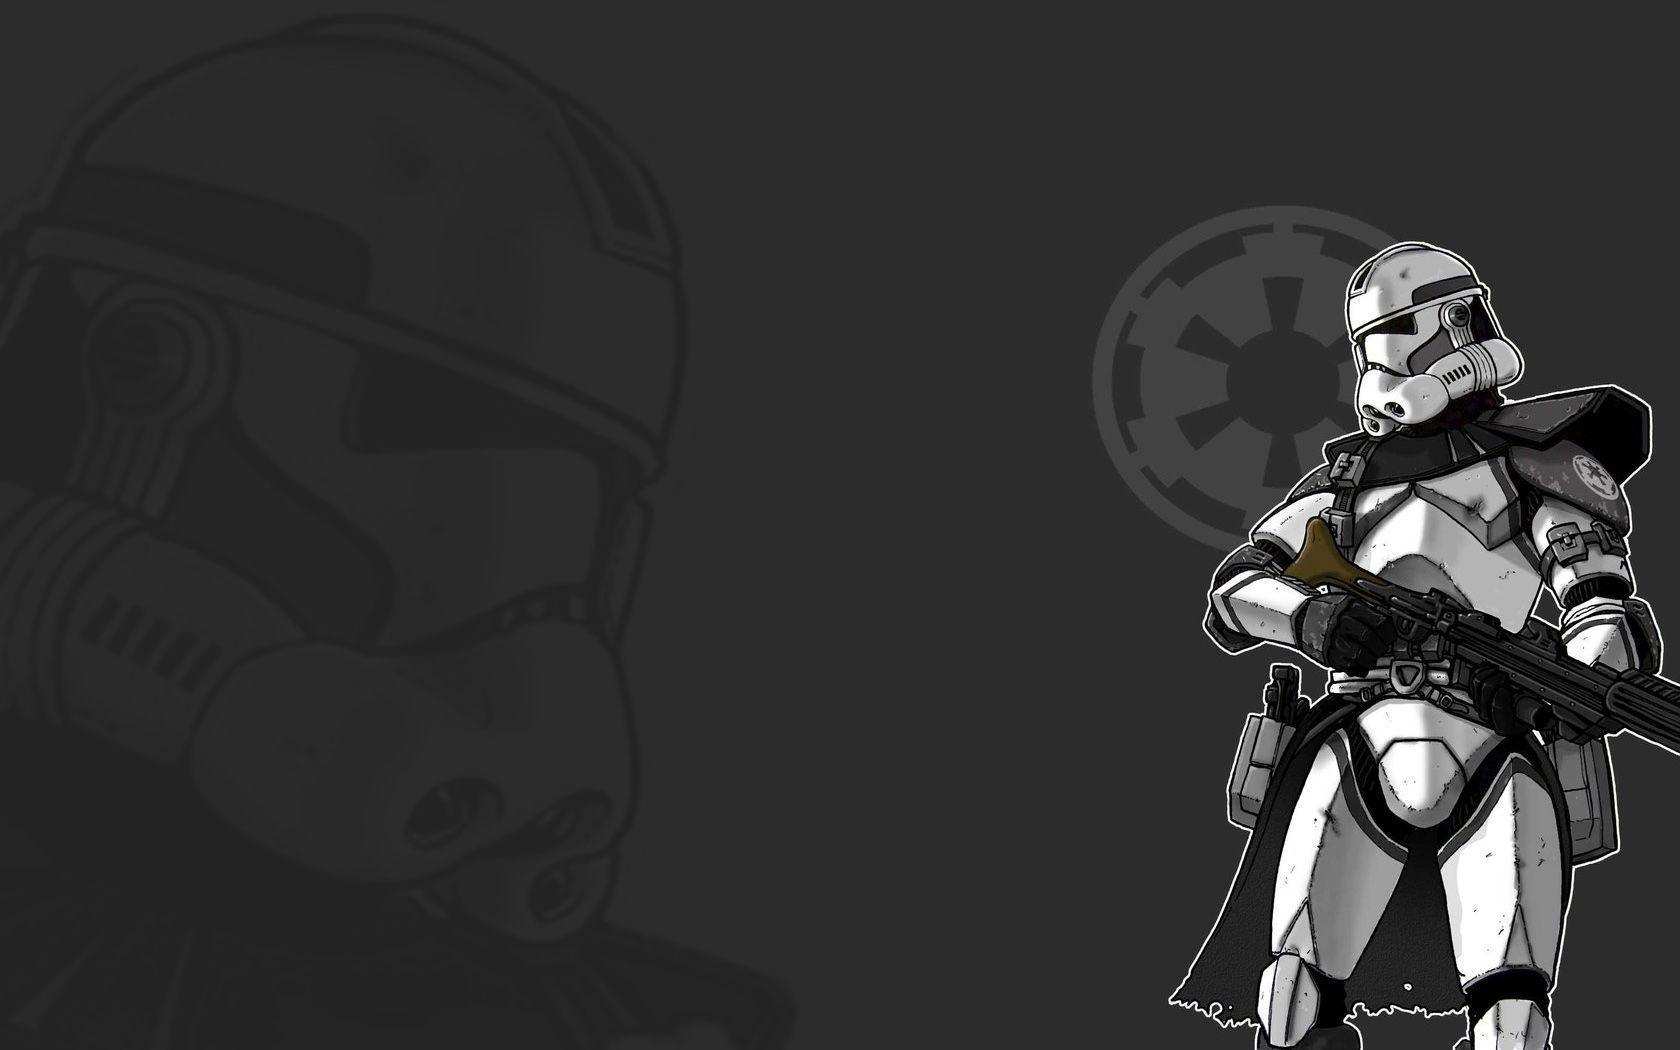 Wallpaper Star Wars The Clone Wars Jpg Pictures to pin on Pinterest